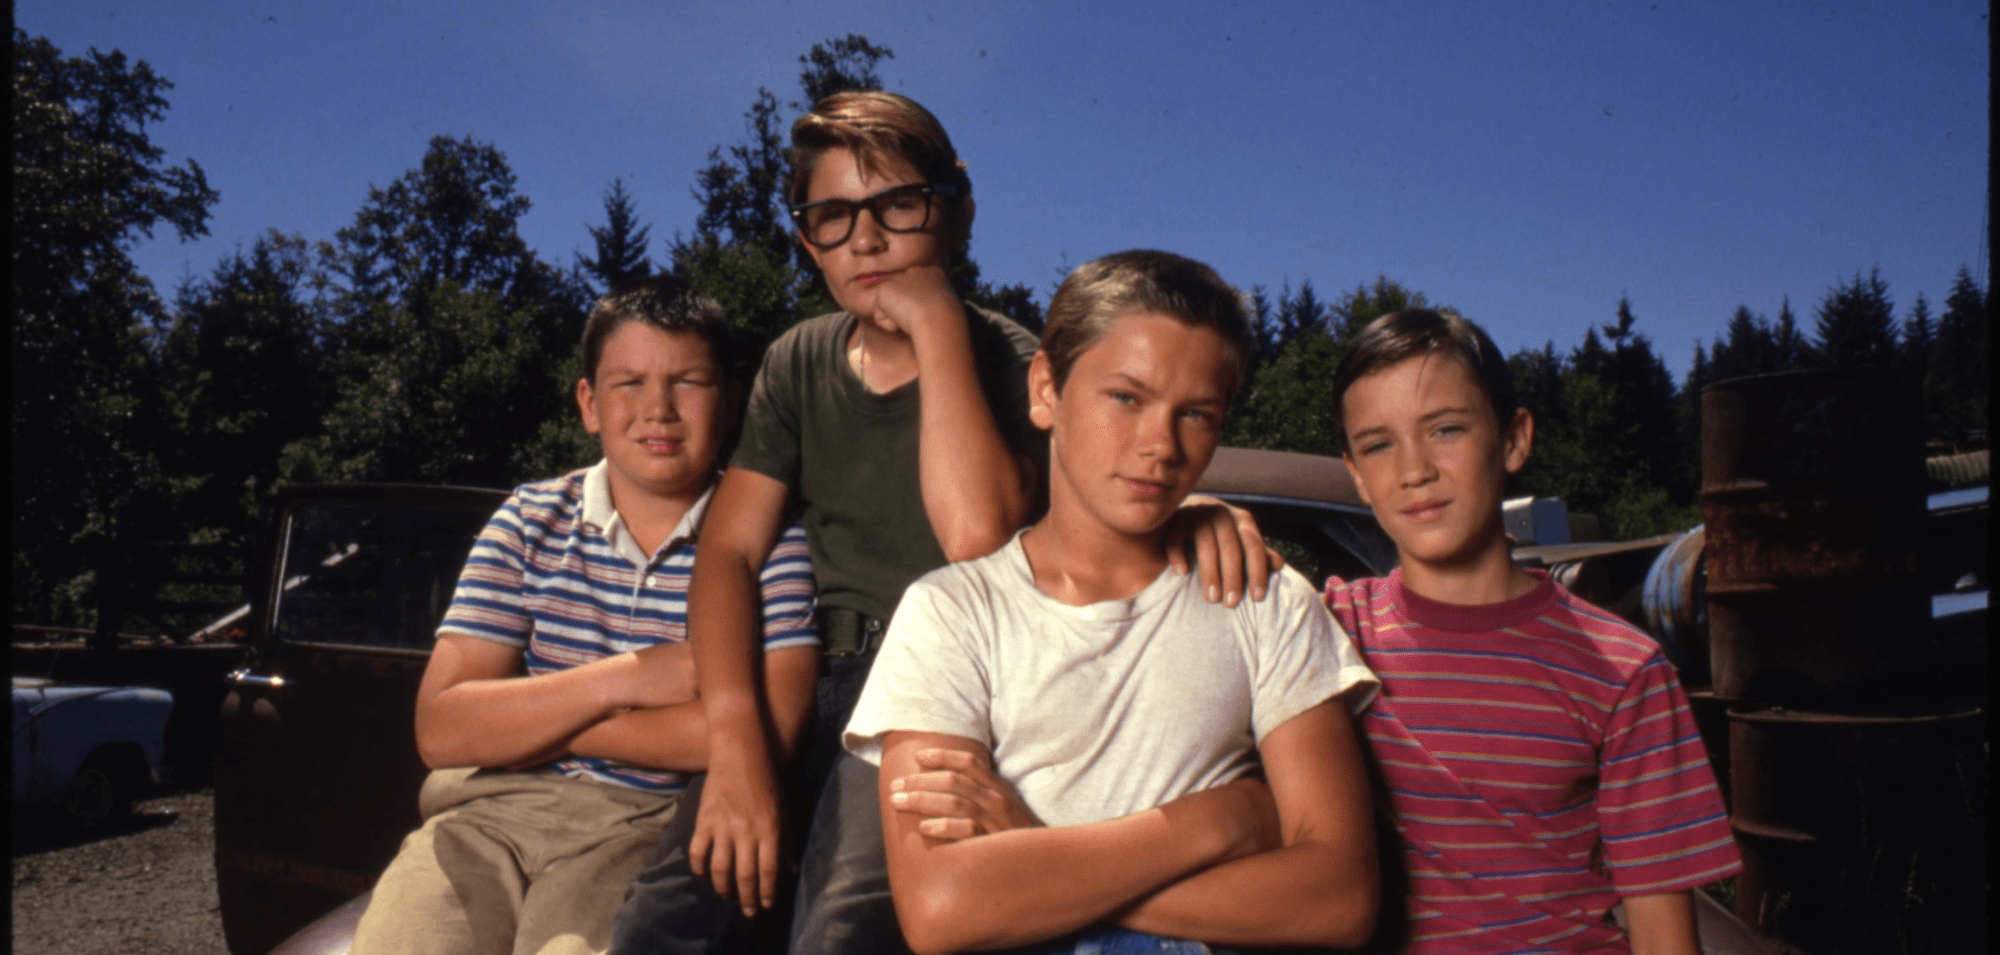 river-phoenix-corey-feldman-wil-wheaton-and-jerry-o-connell-in-stand-by-me-1986-large-picture